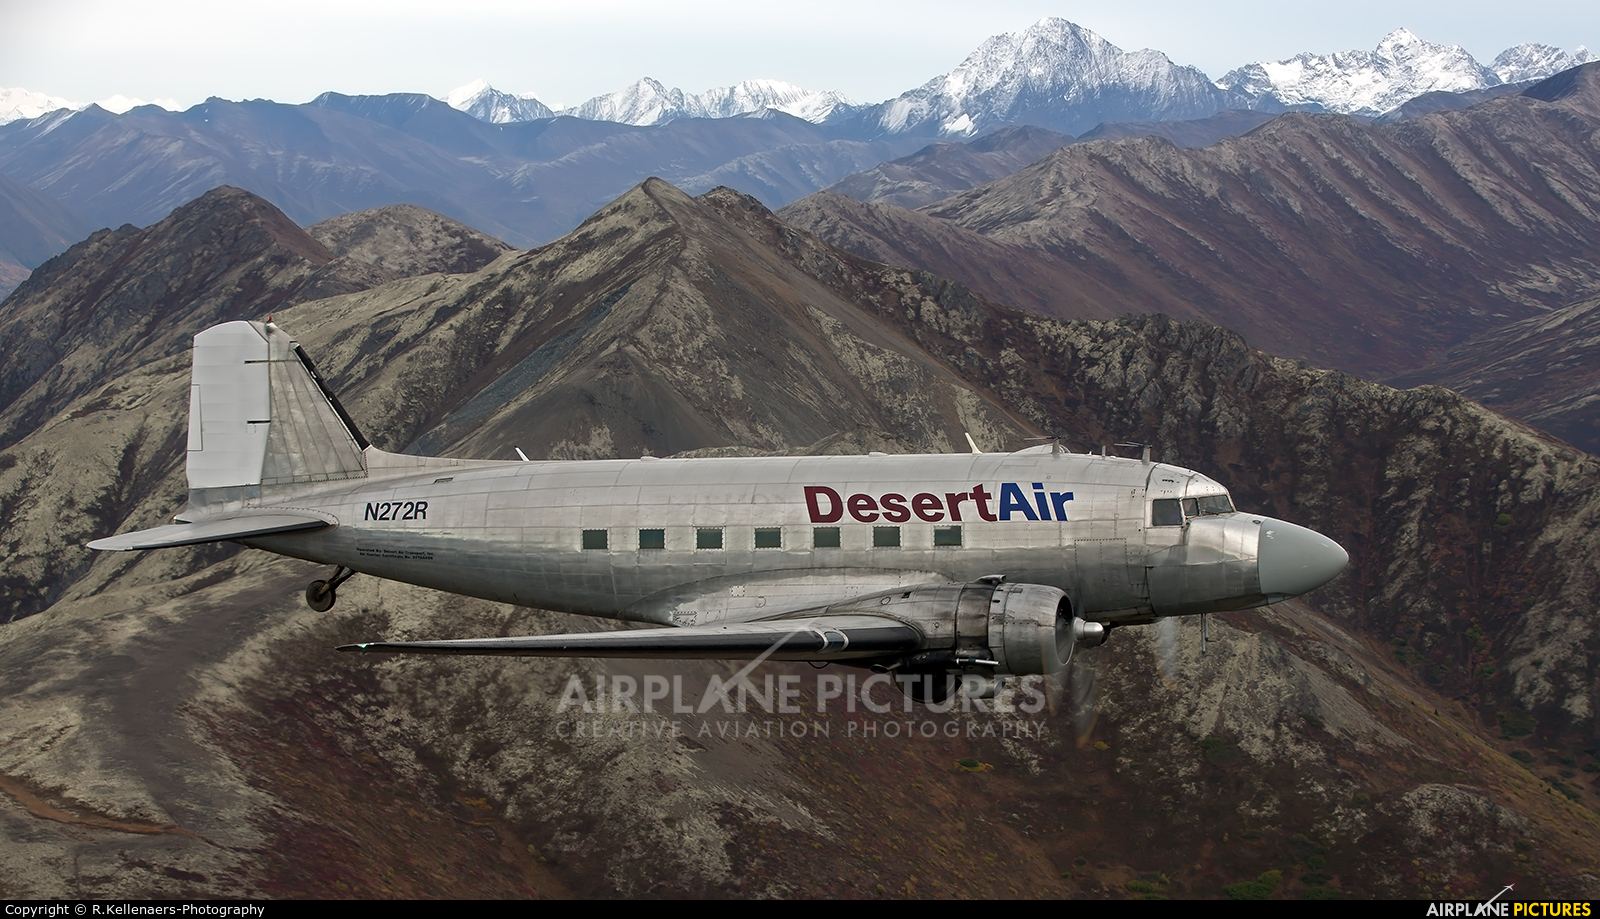 Desert Air N272R aircraft at In Flight - Alaska